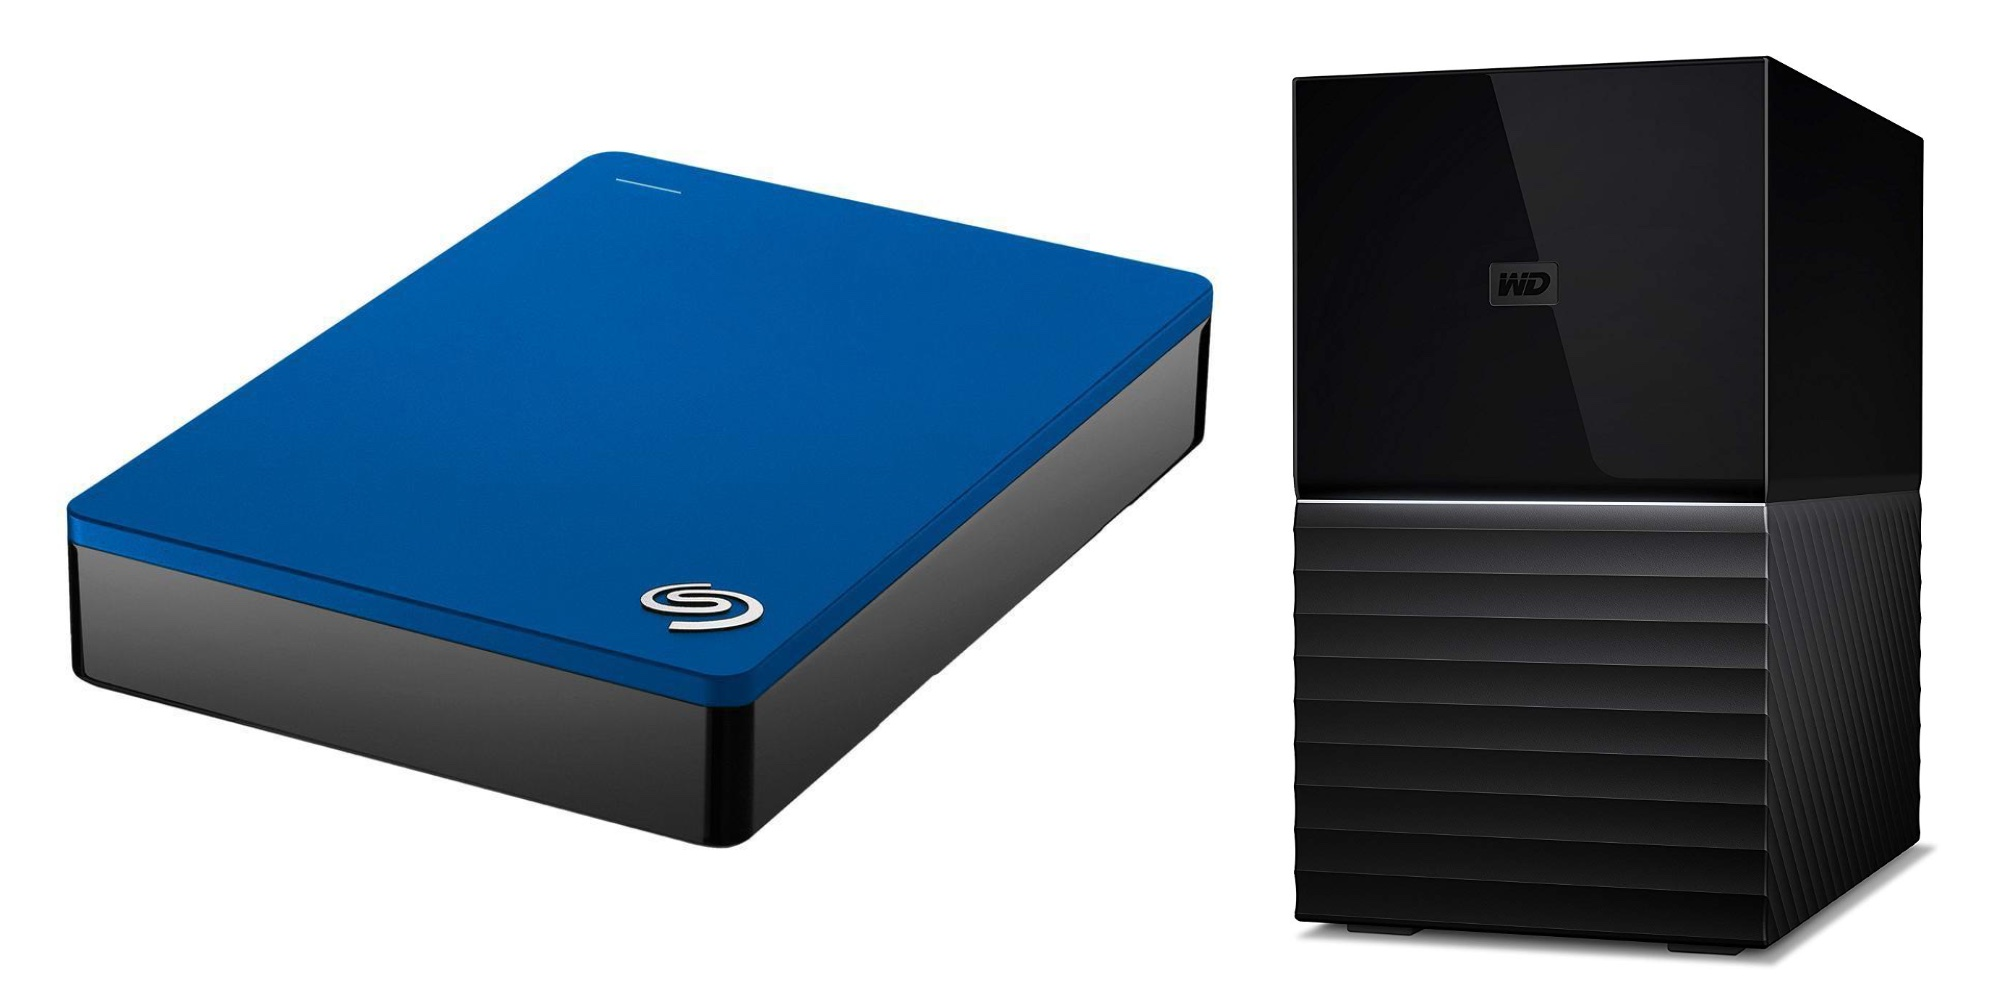 Seagate's 5TB Portable Hard Drive drops to $100 (20% off) + $100 off the WD 16TB My Book Duo